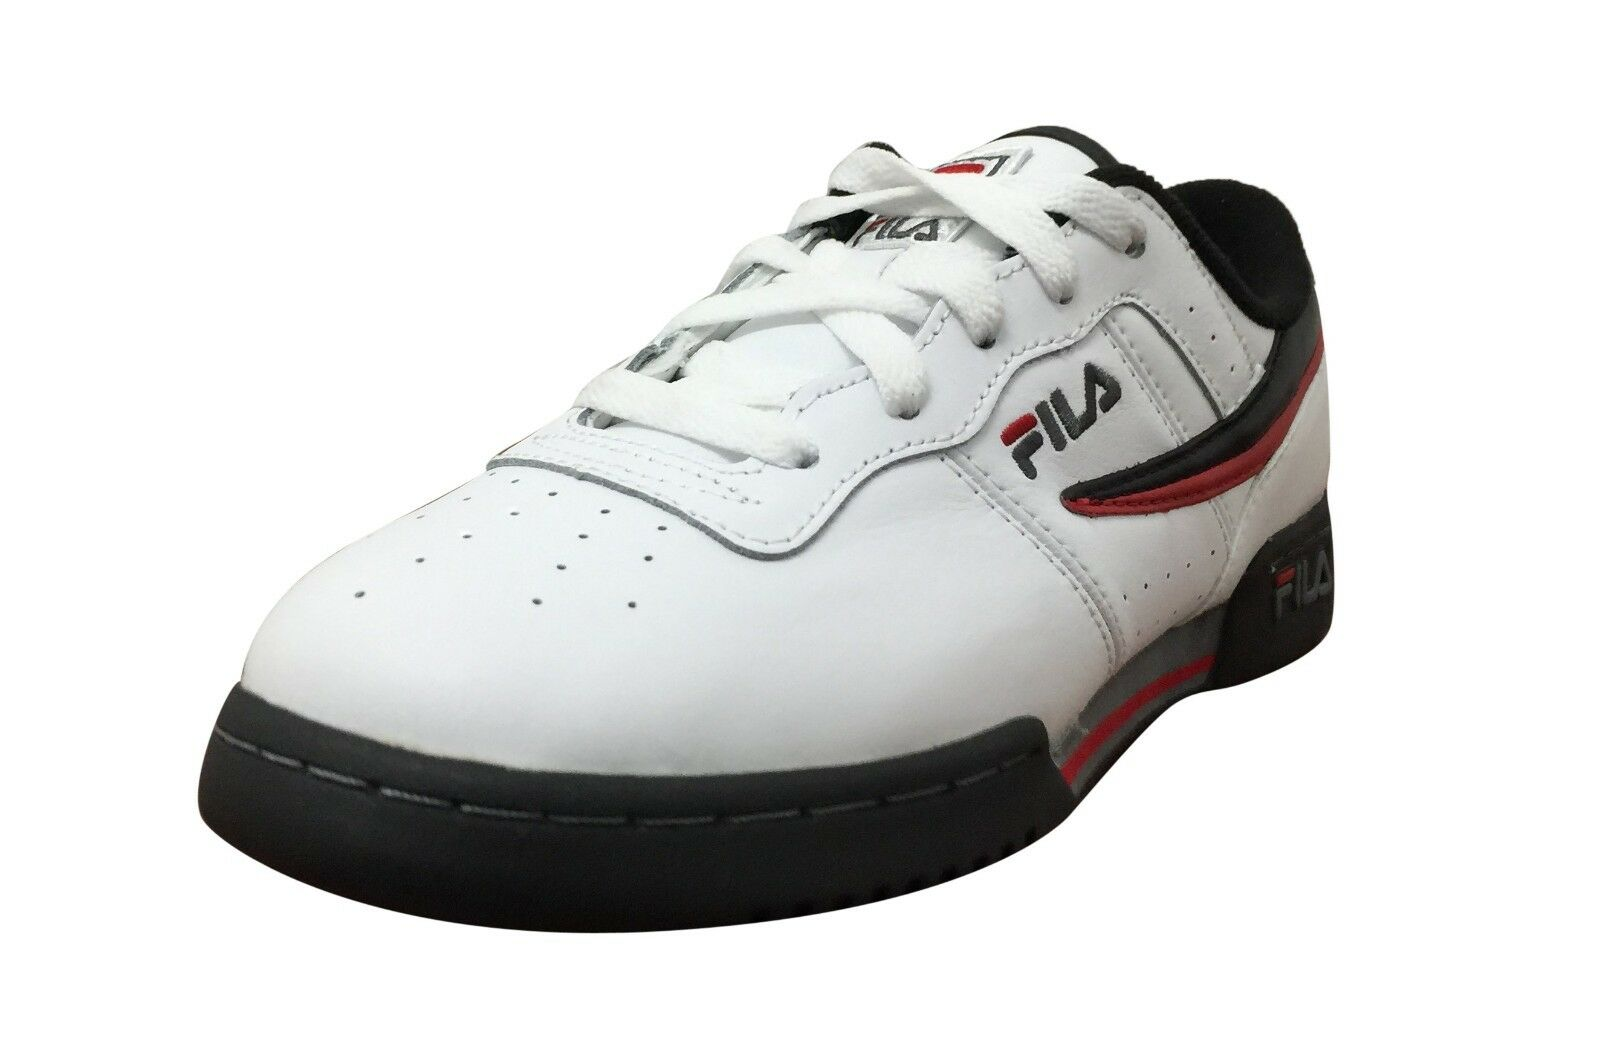 Fila Original Fitness White/Black/Fire Red Price reduction Price reduction New shoes for men and women, limited time discount